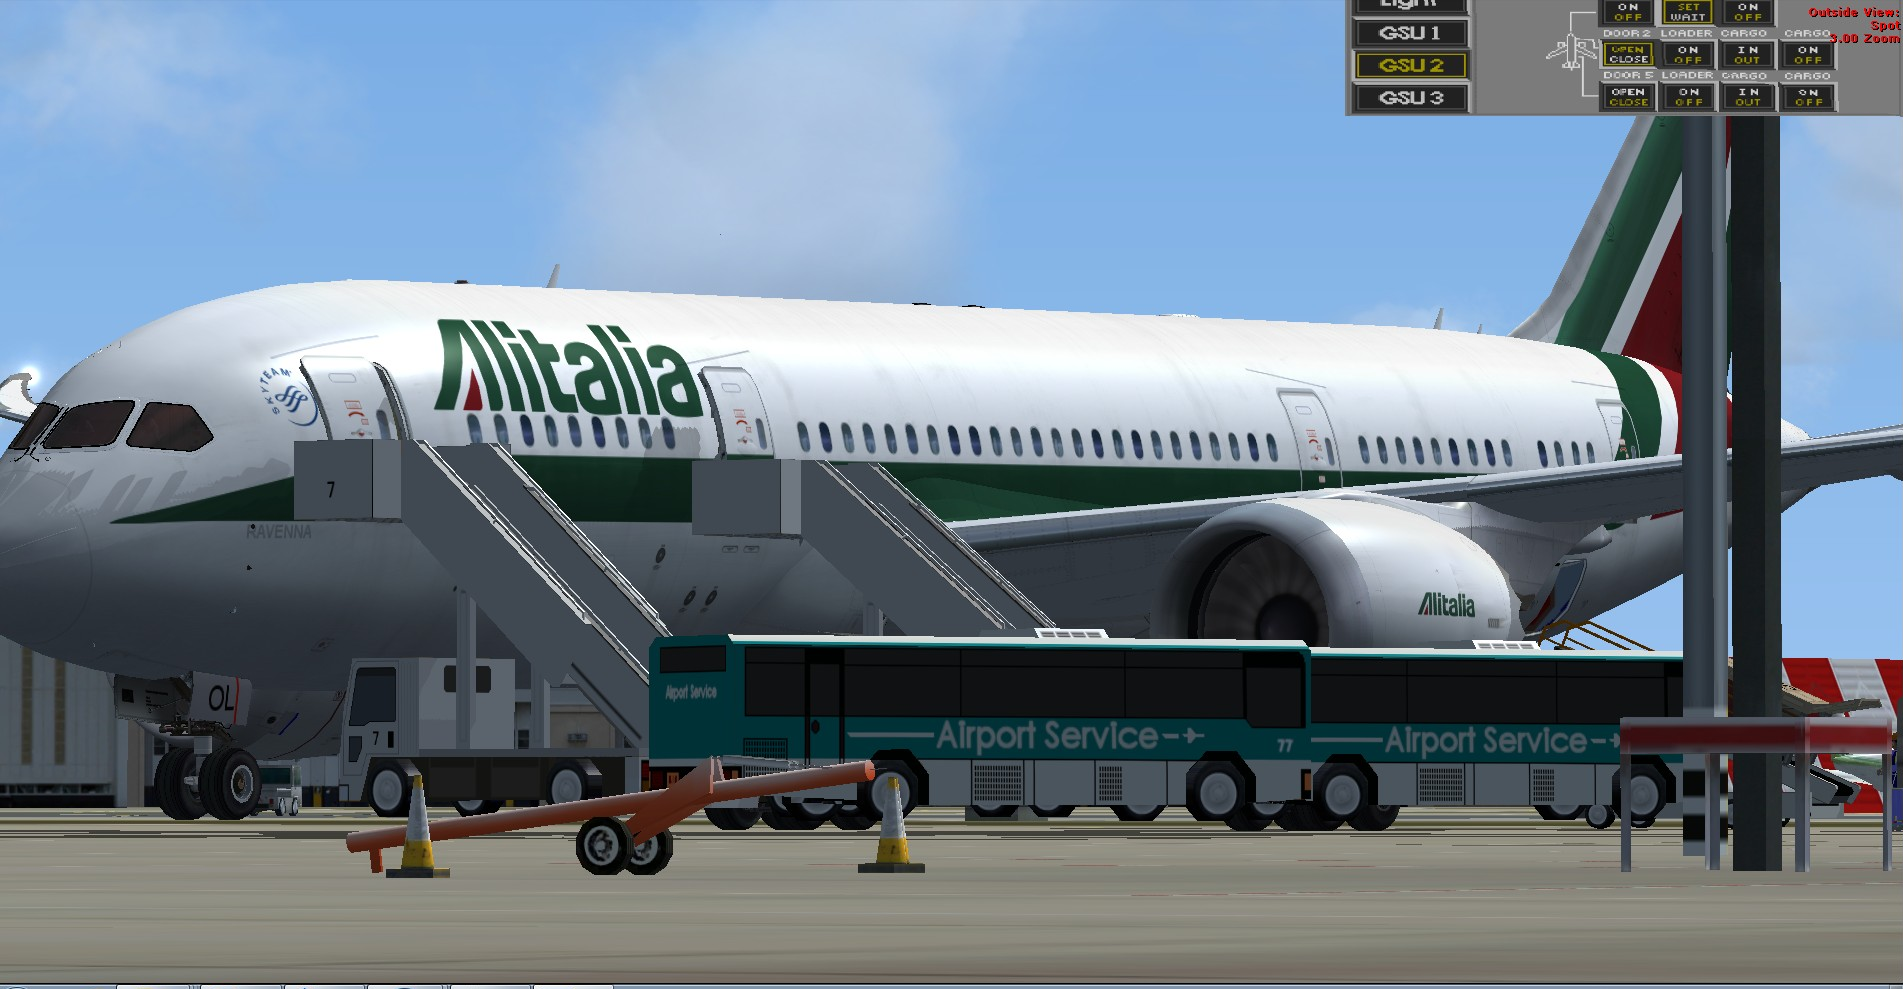 Fsx Boeing 787 With Vcr - autosxilus